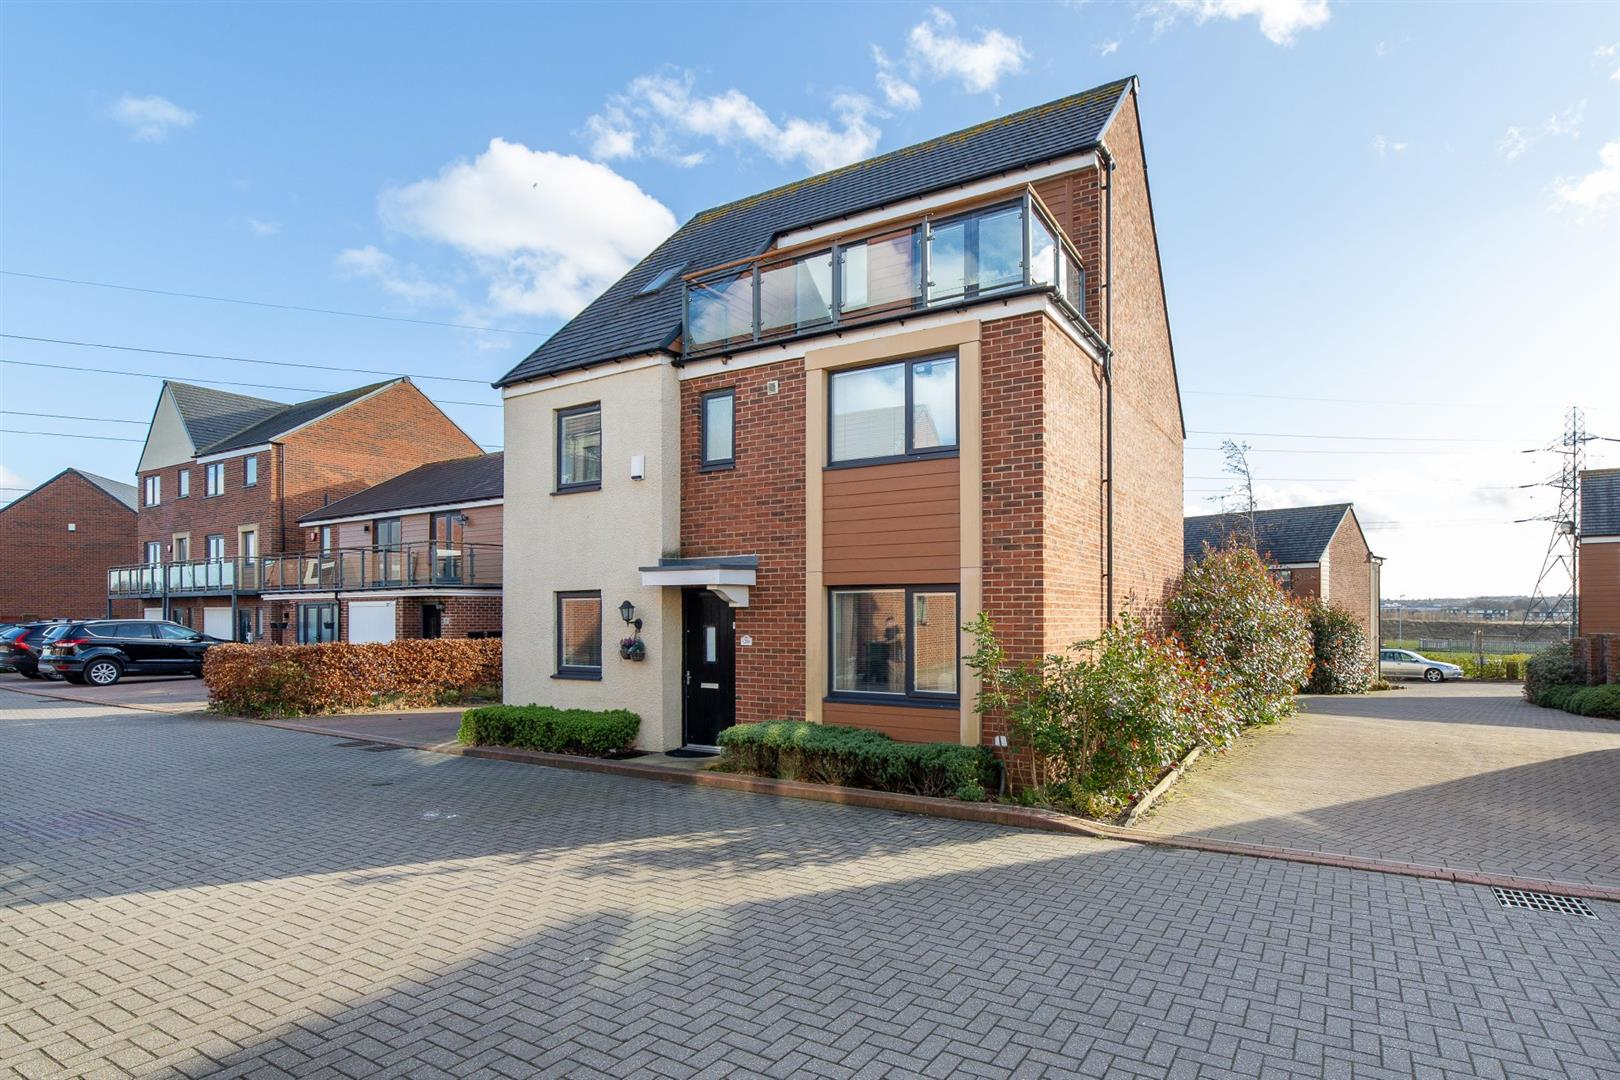 5 bed detached house for sale in Great Park, NE13 9BF  - Property Image 1